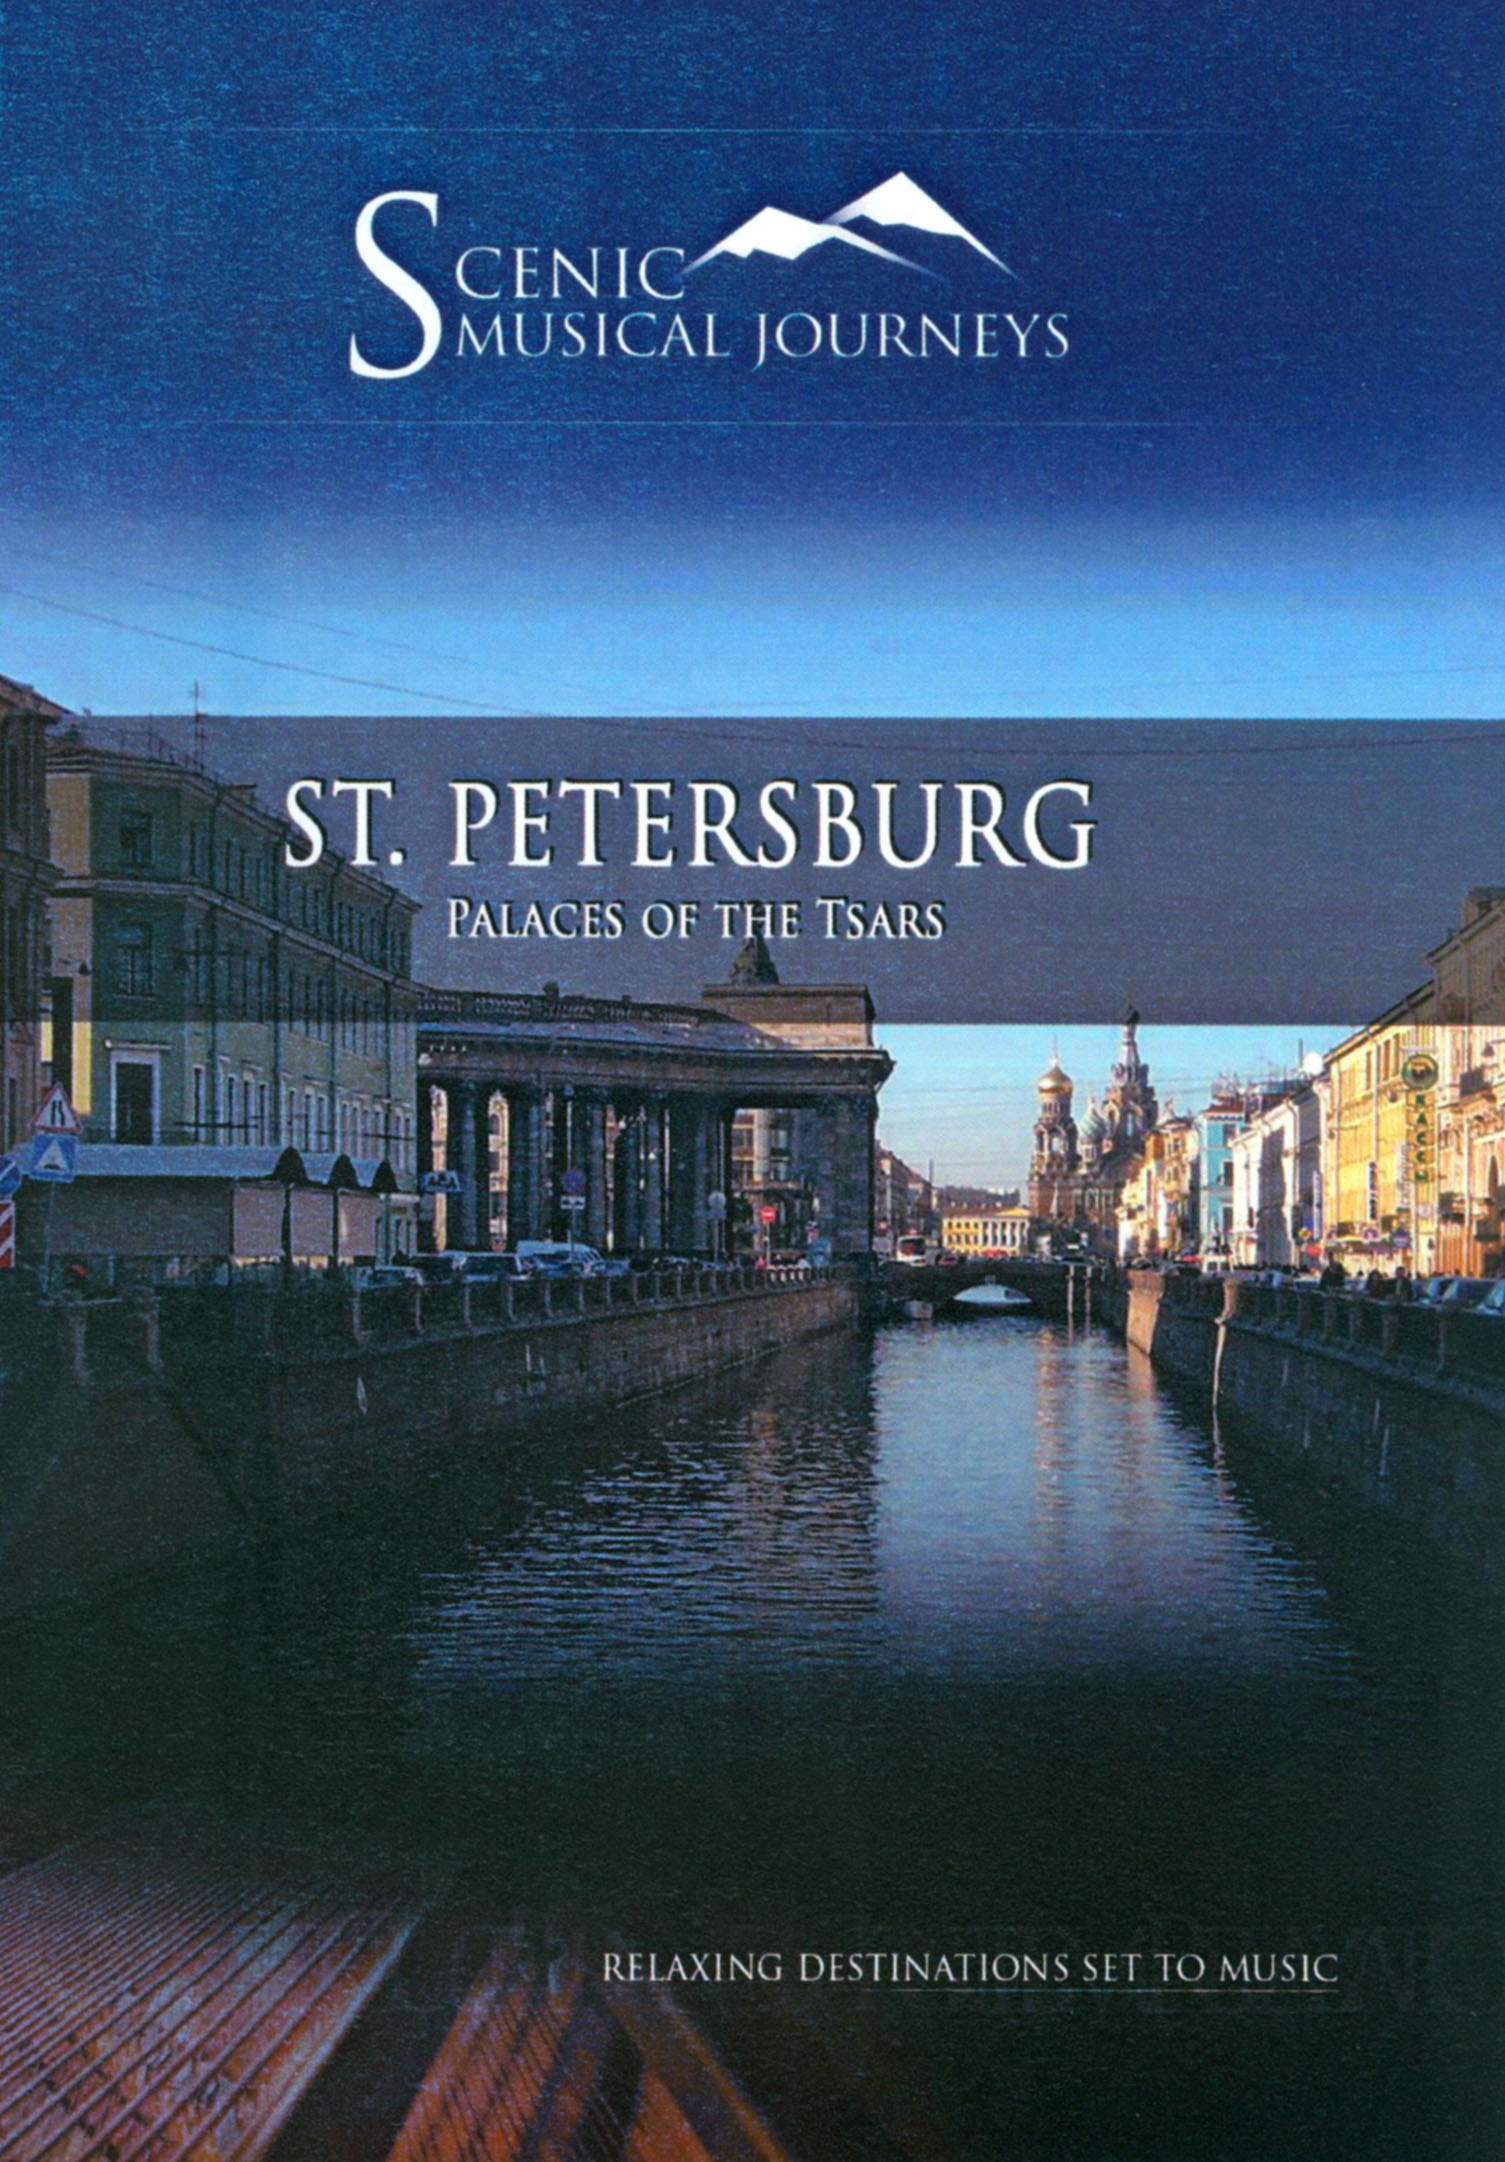 Scenic Musical Journeys: St. Petersburg - Palaces of the Tsars